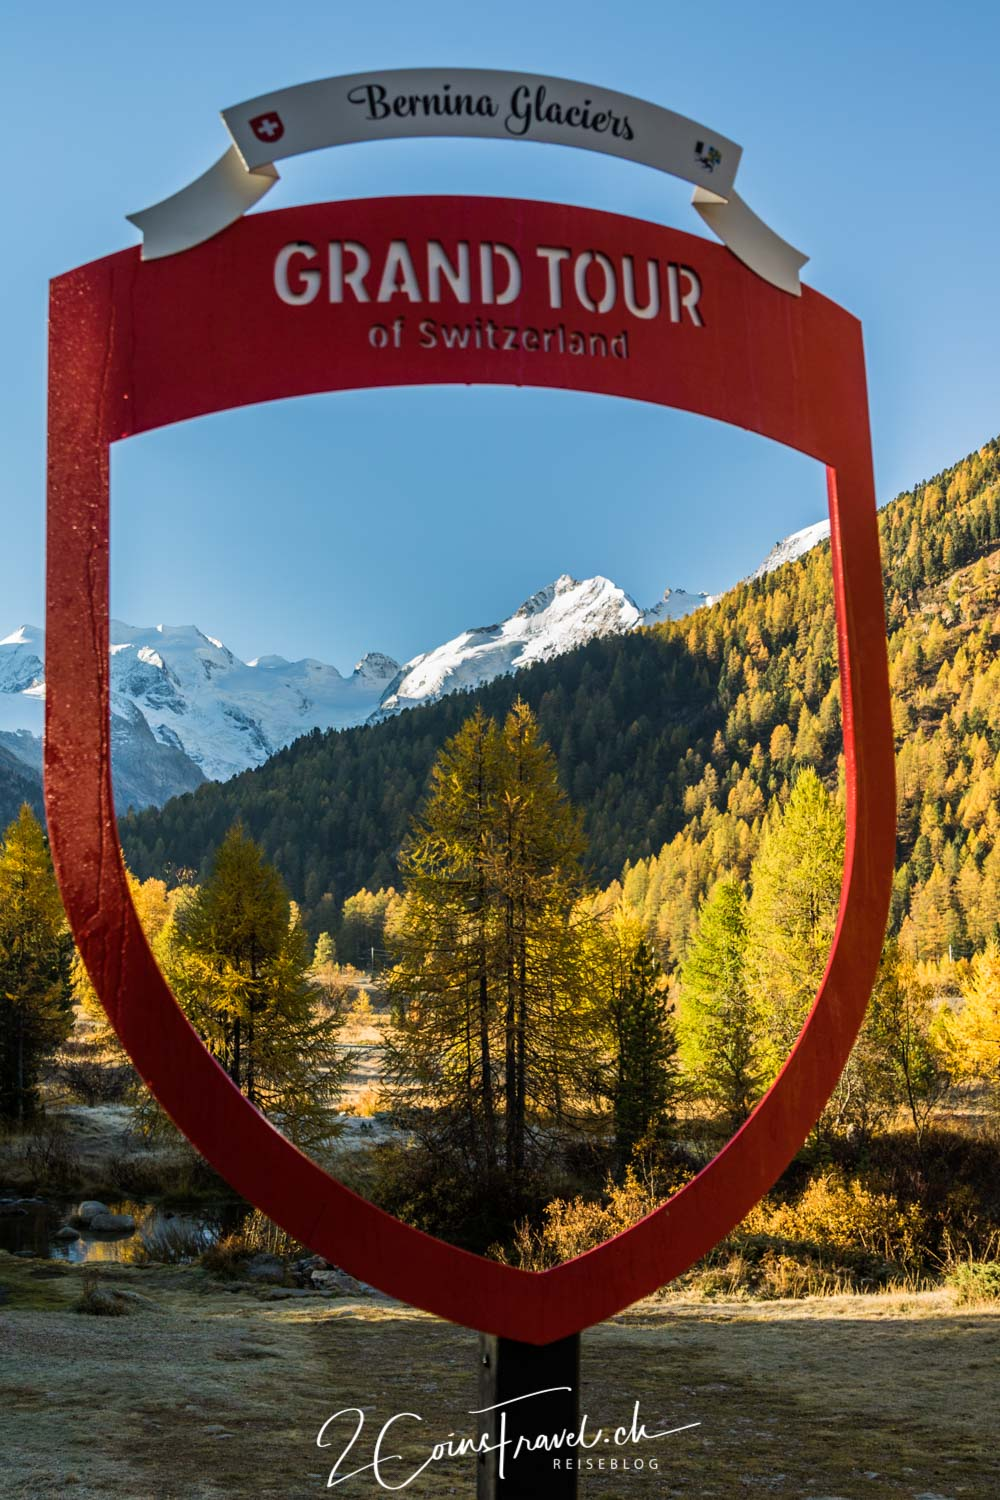 Grand Tour Foto-Spot Bernina